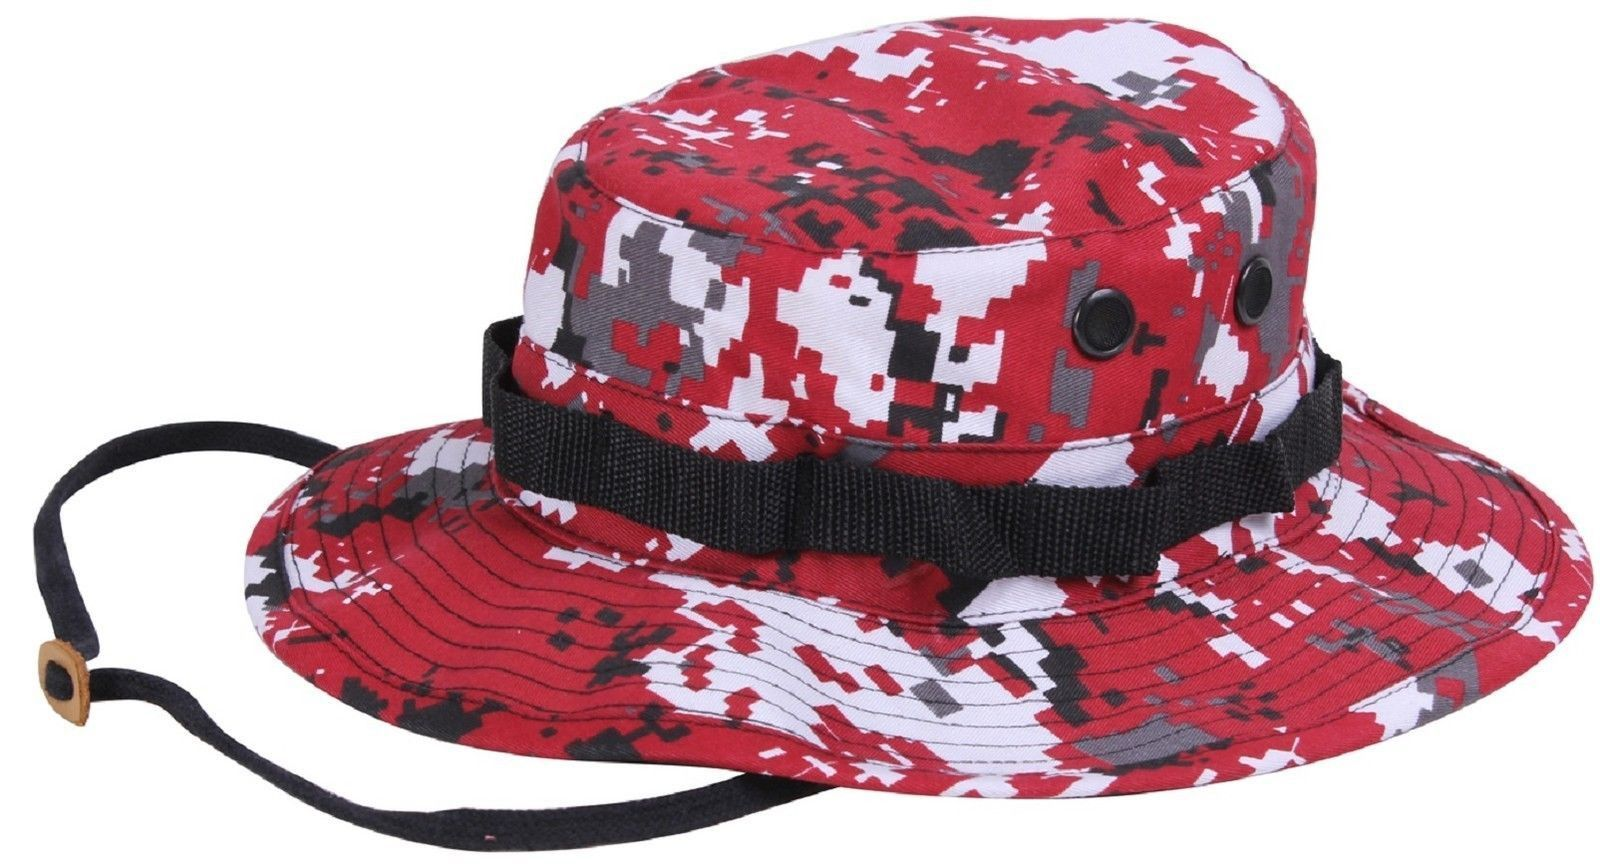 b34dc73f6bb2f Blue or Red Digital Camouflage Boonie Hat - Rothco Digi Camo Bucket Hats